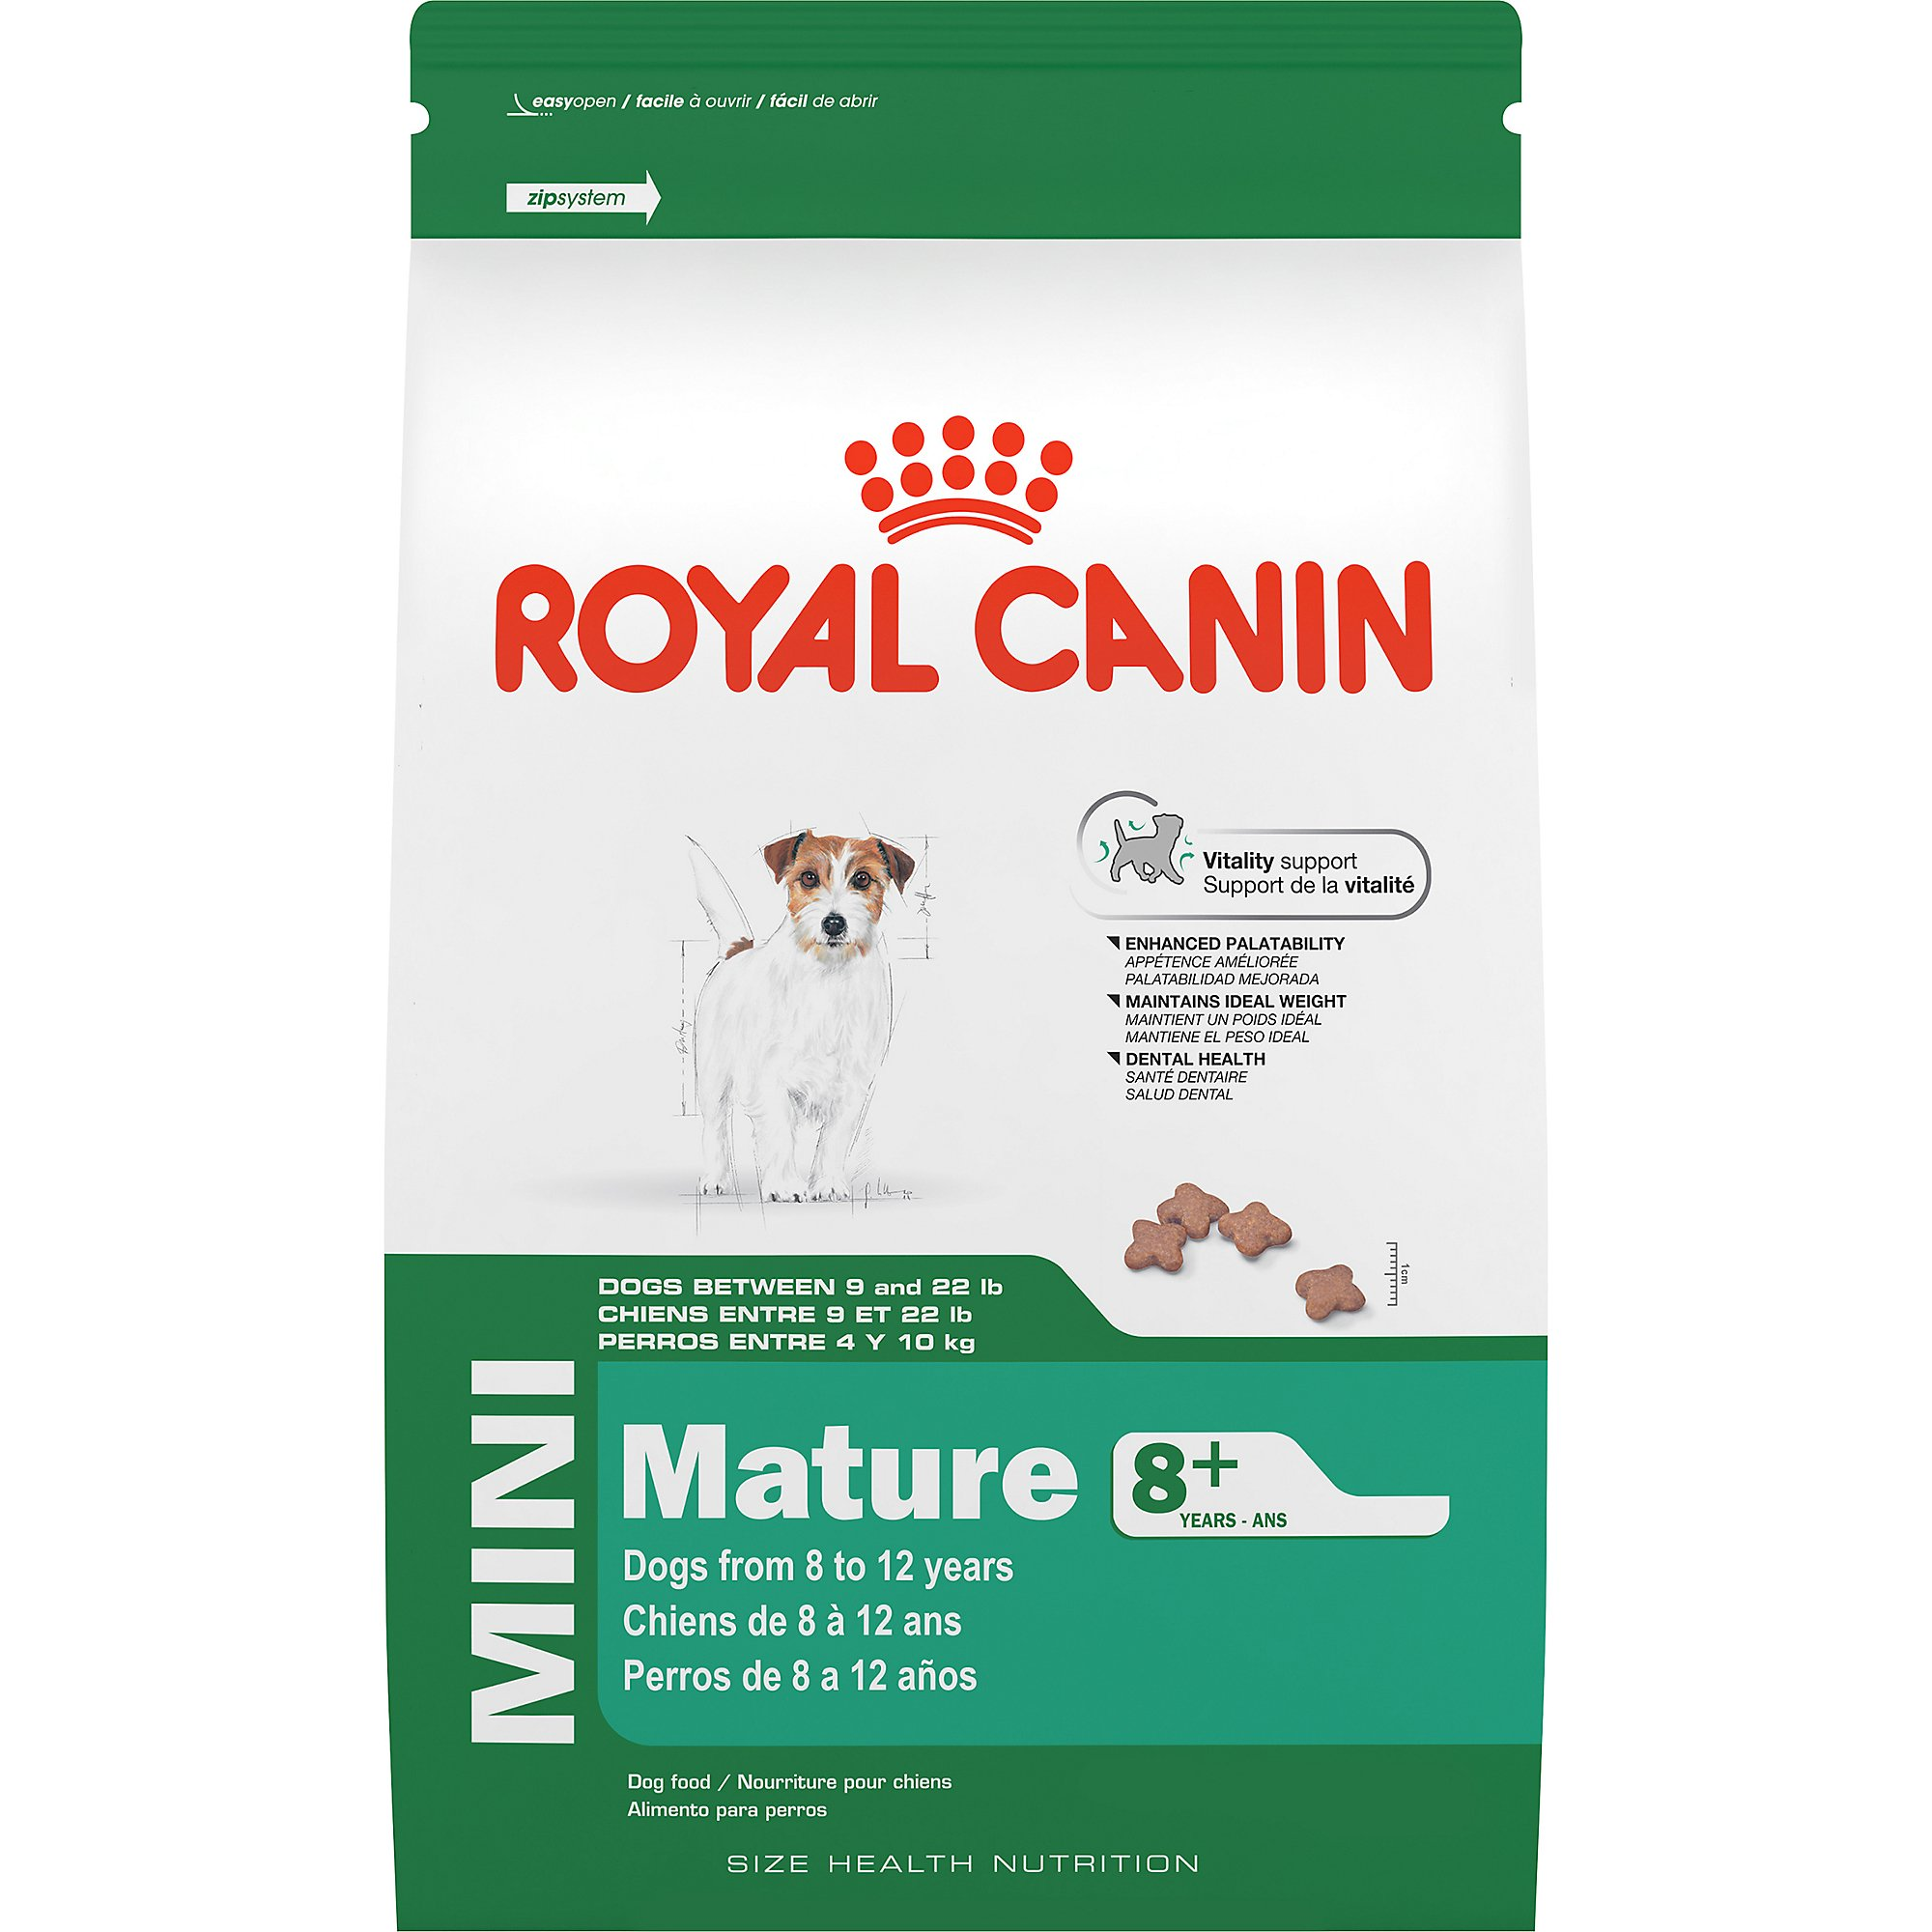 royal canin size health nutrition mini mature 8 dry dog food petco. Black Bedroom Furniture Sets. Home Design Ideas